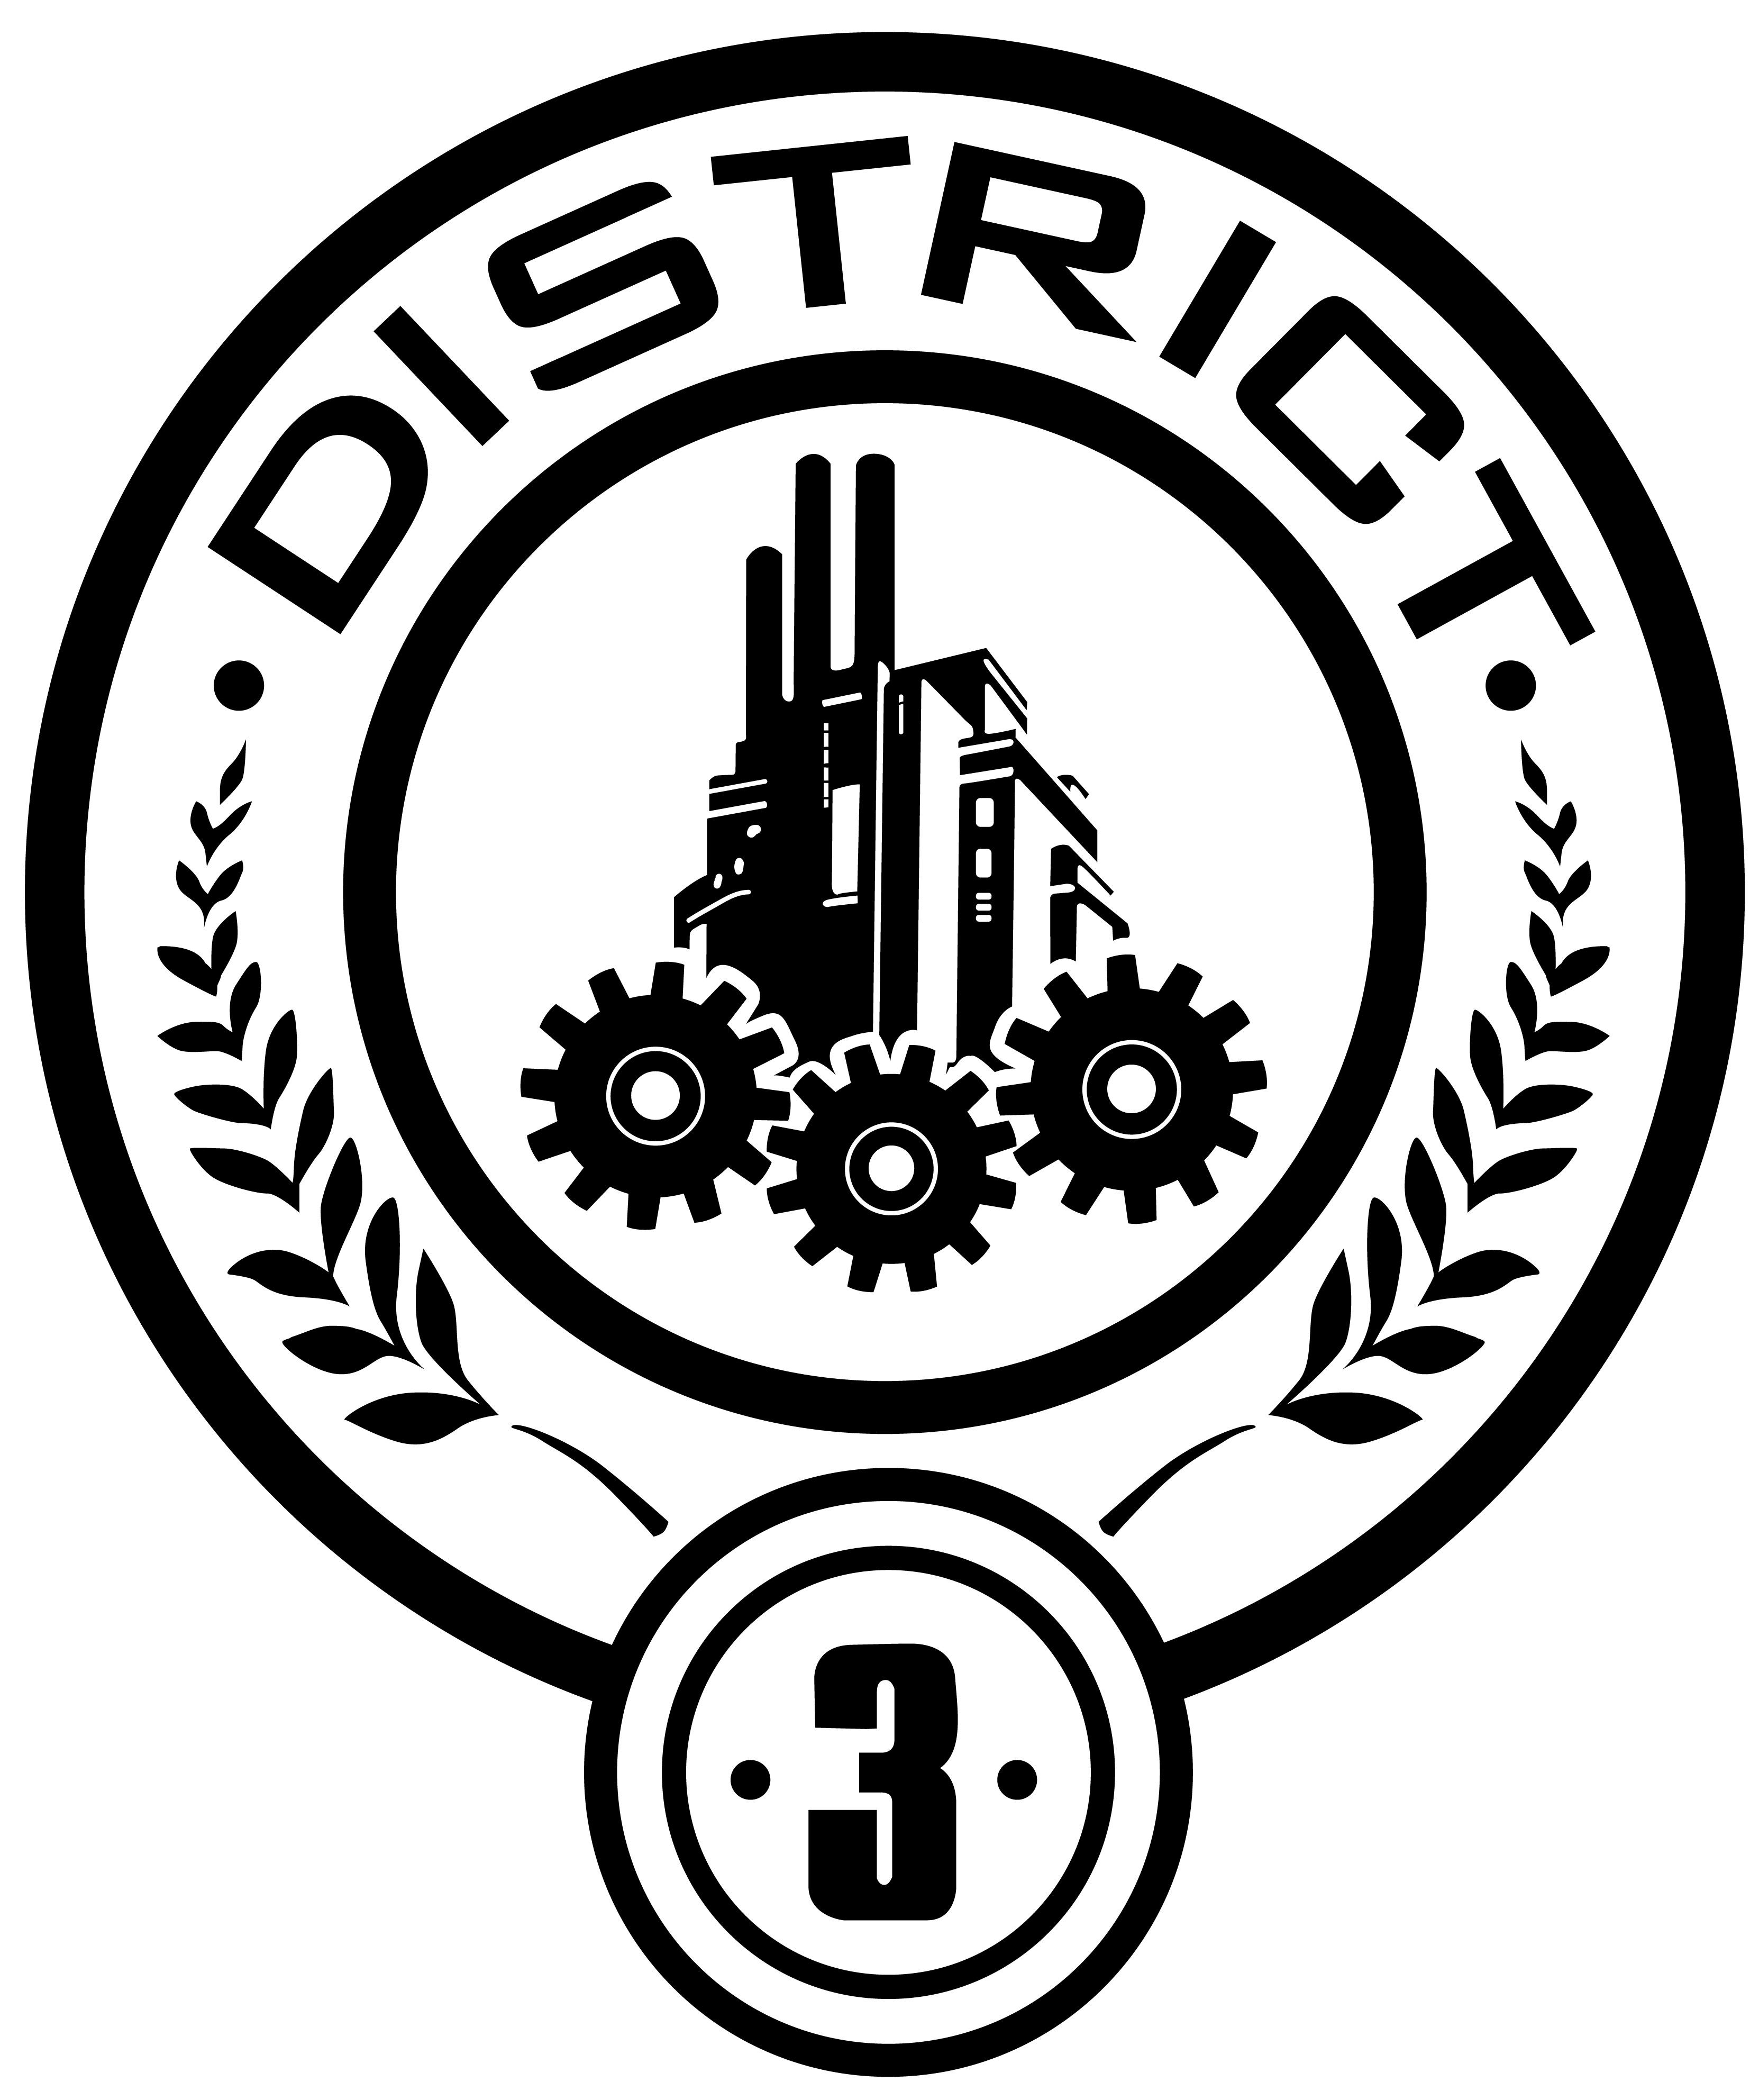 District 3 seal by trebory6 on deviantart district 3 seal by trebory6 district 3 seal by trebory6 buycottarizona